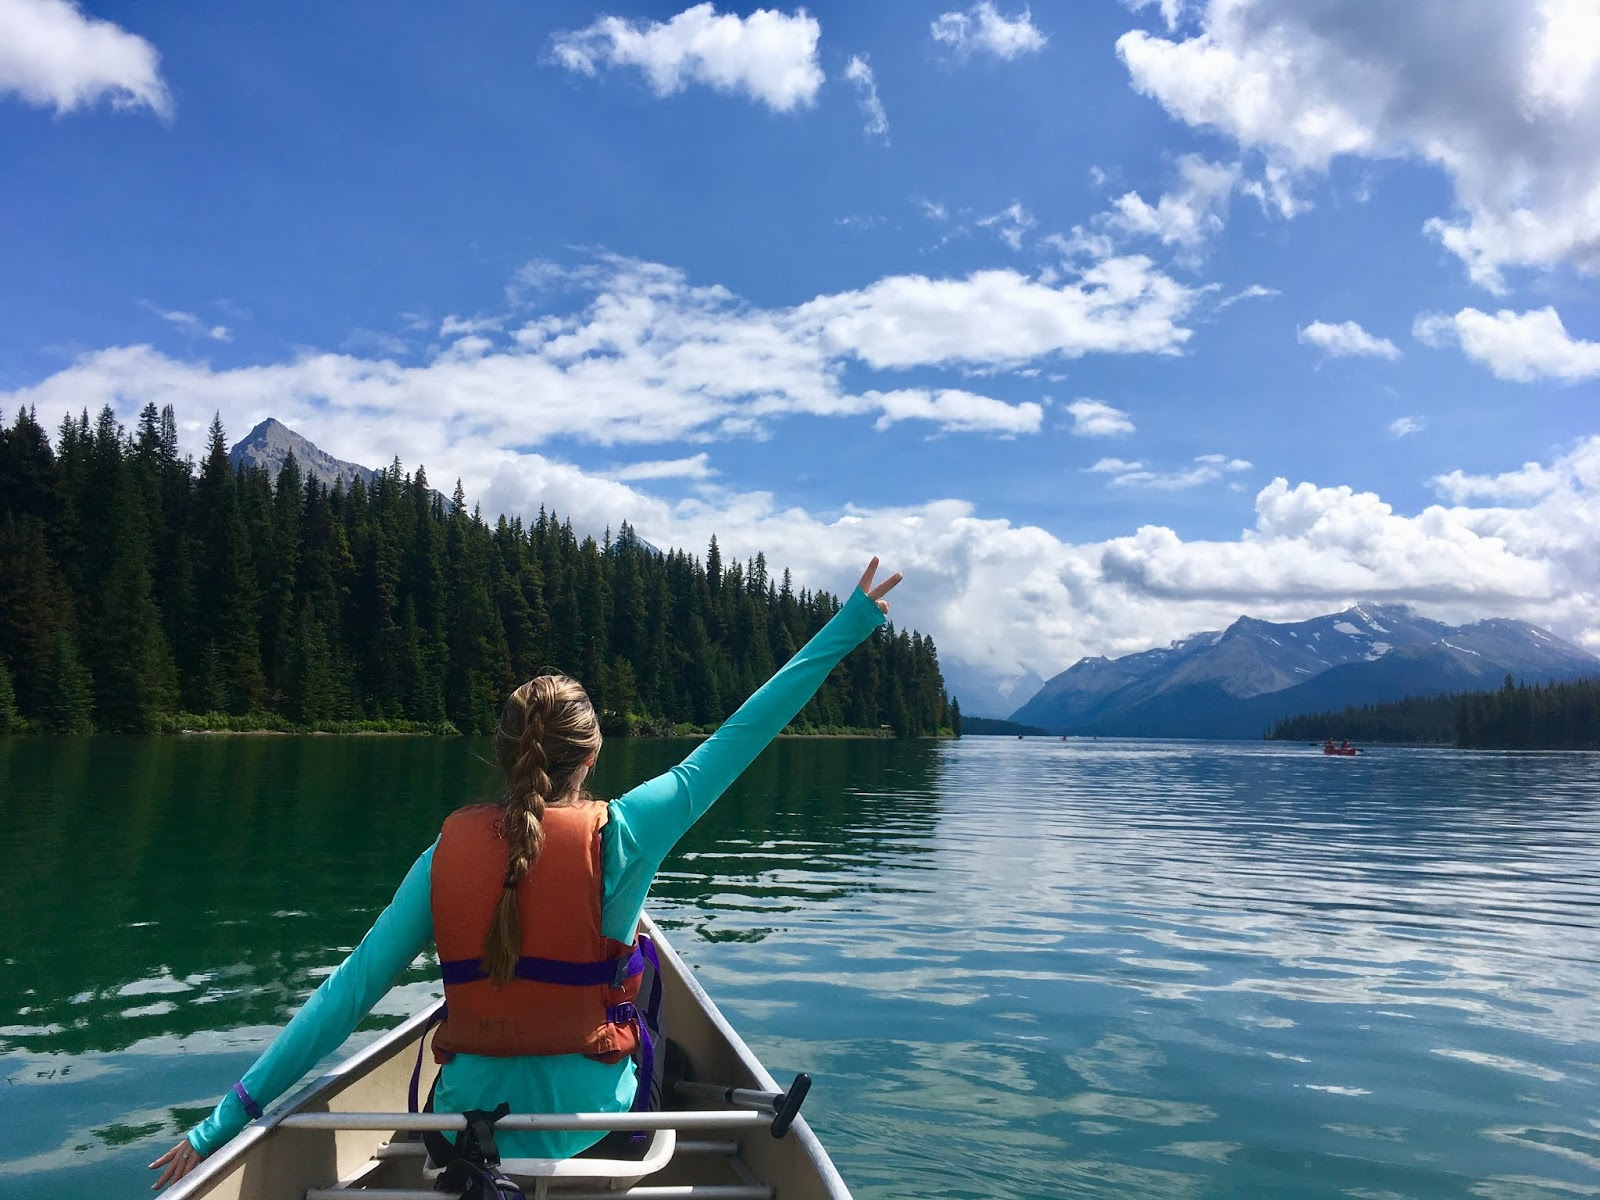 Renting a Canoe at Maligne Lake | Is it worth it to rent a canoe in the Canadian Rockies | What to do in Jasper National Park | Jasper Itinerary | Banff Bucketlist | A Memory of Us